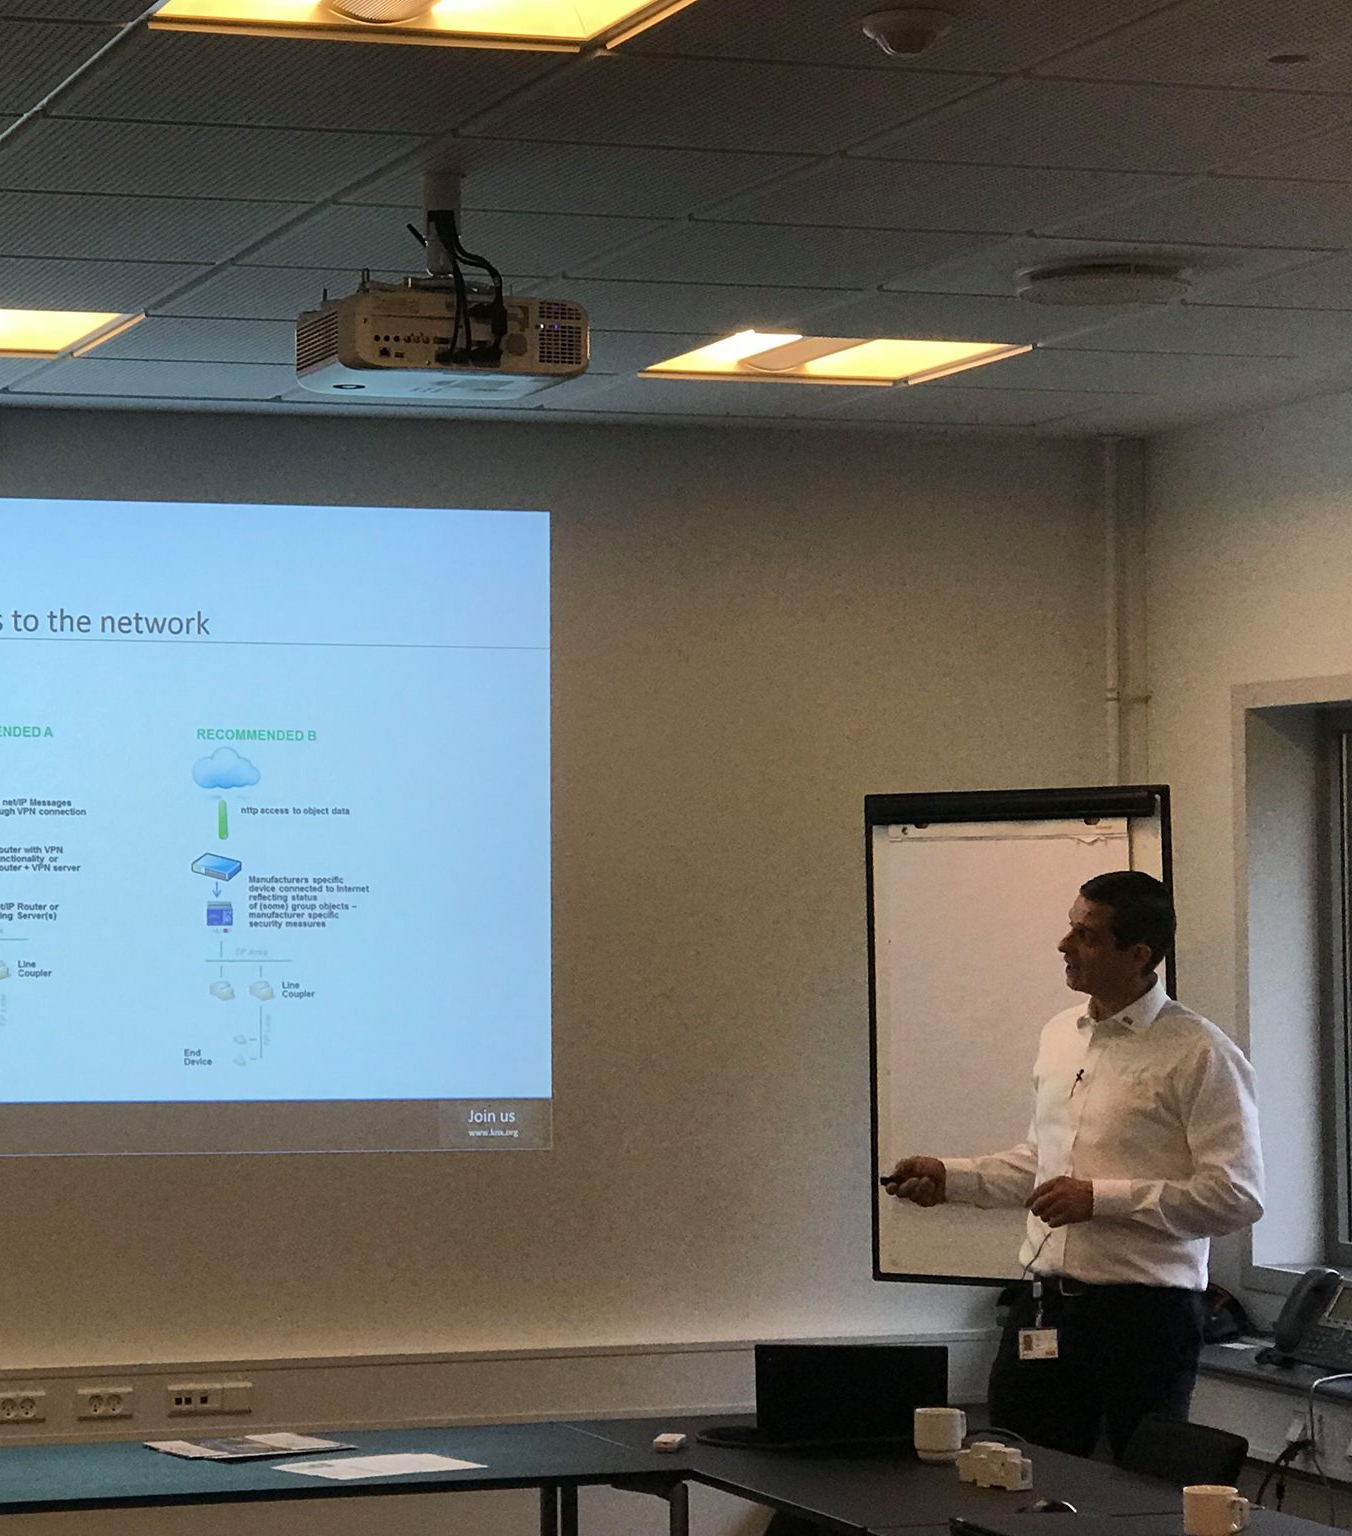 3 days, 3 events - KNX Denmark brings security to homes